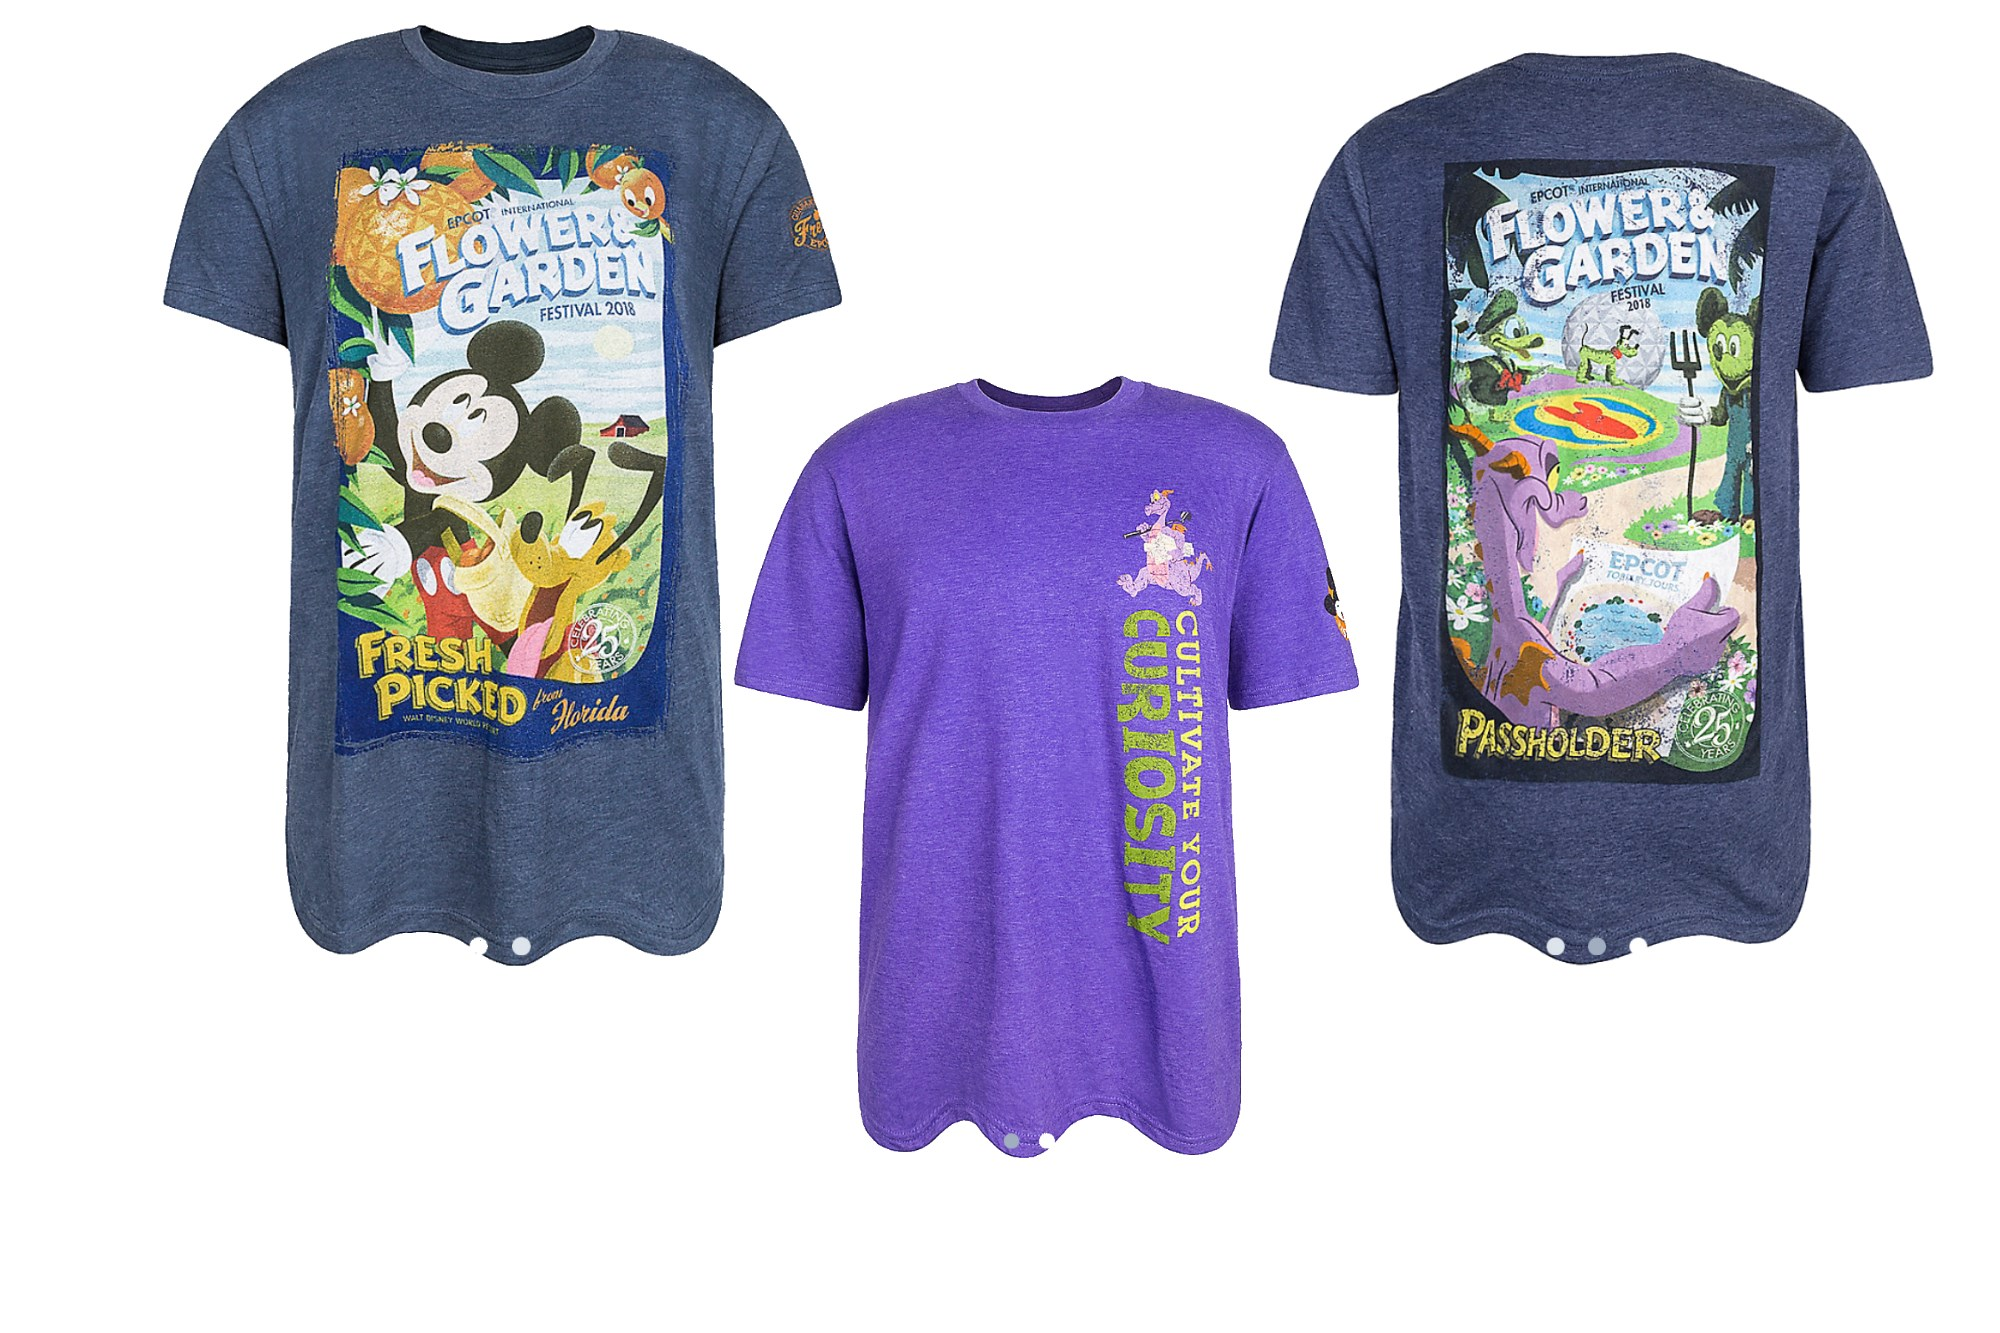 2018 flower and garden shirts available on shop disney parks app